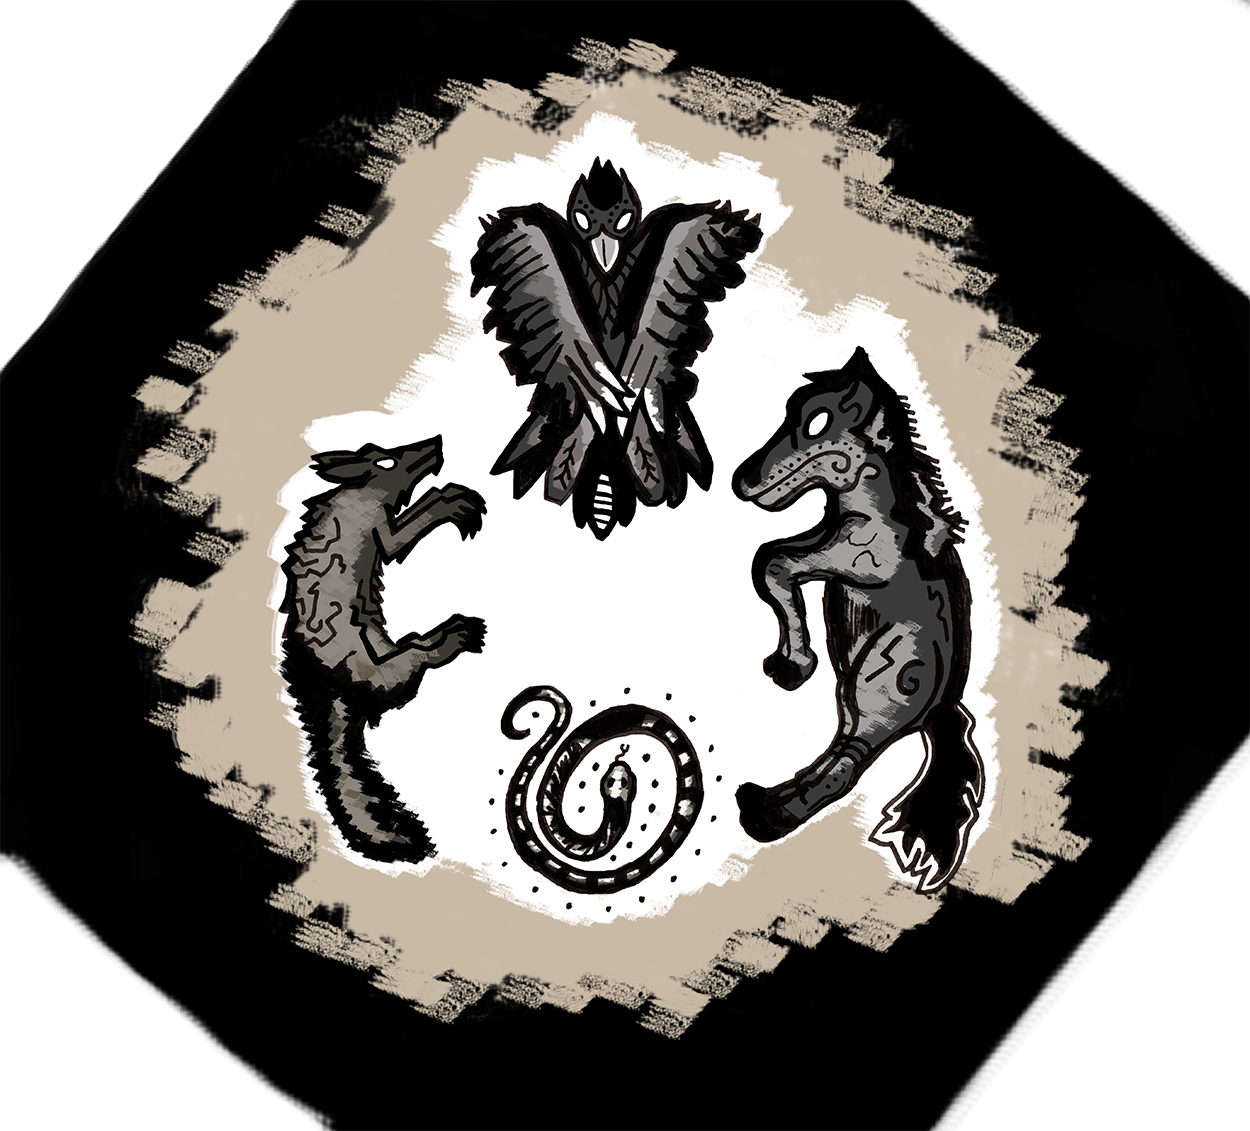 The Wolf, the Horse, the Eagle and the Snake - 2018   Personal myth, private folklore. A story about letting go of love, of traveling and many magical animal forms.